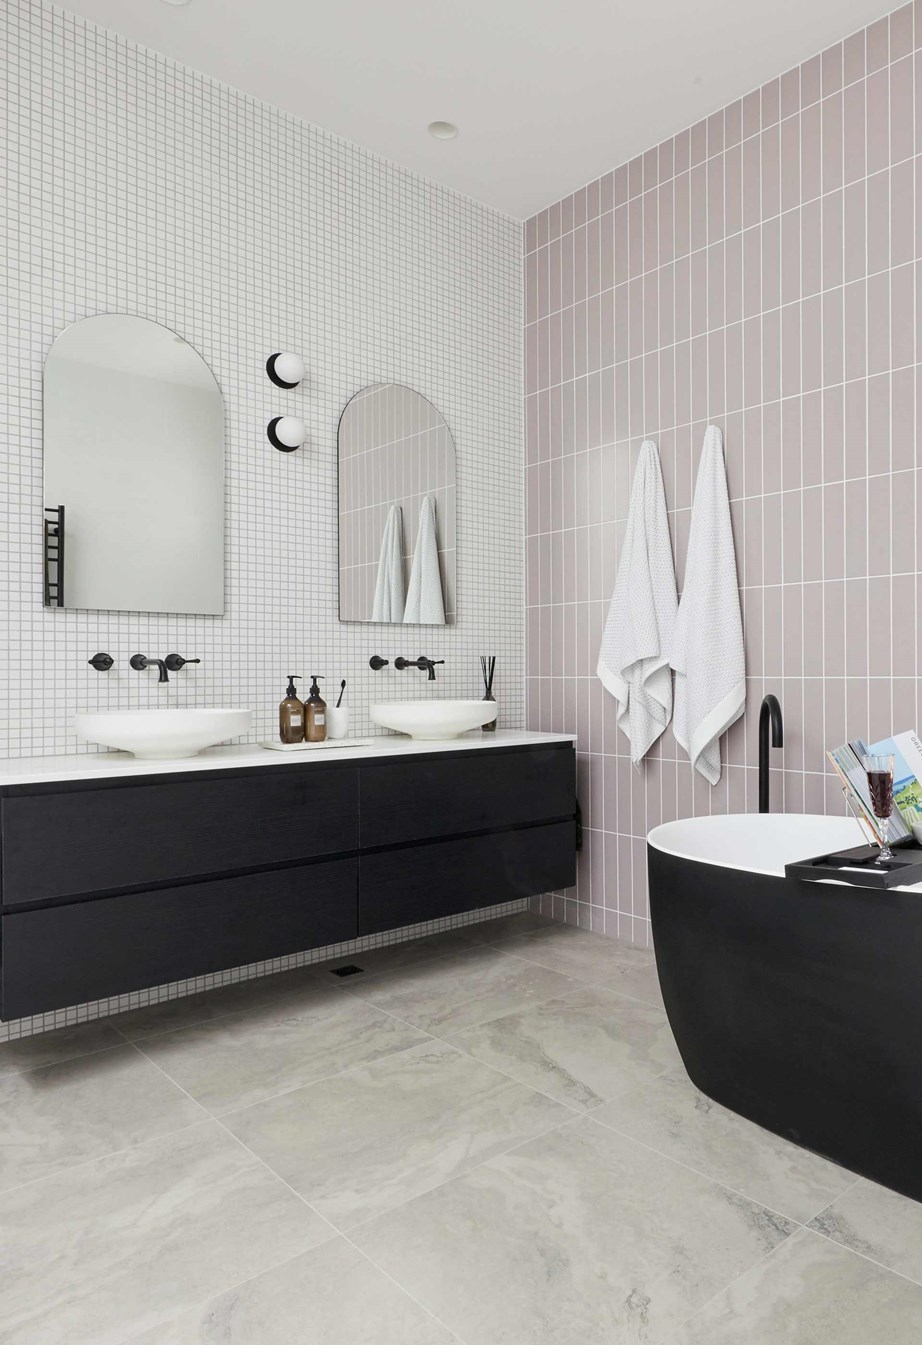 """**Sarah and George: House 2:**<br> [Sarah and George](https://www.homestolove.com.au/sarah-and-george-the-block-2020-21738